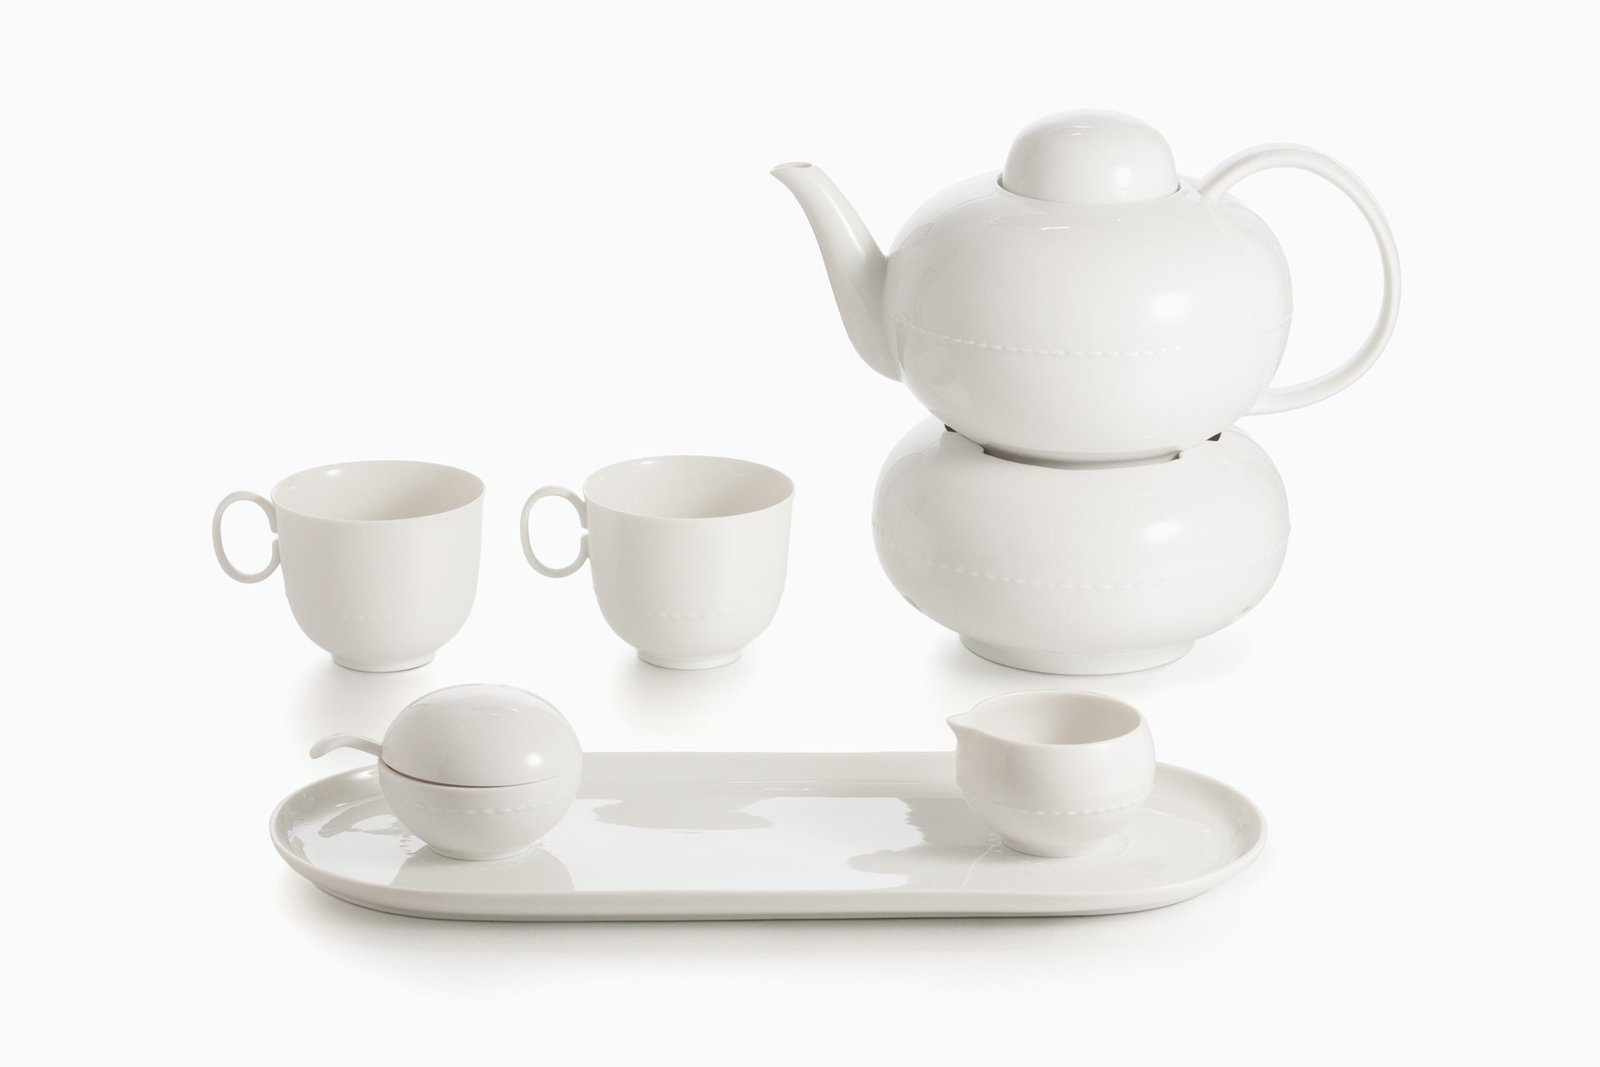 Haute Couture Tea Service (2001) by Konstantin Grcic, estimated at $1,800–$2,500. Designed by Konstantin Grcic, the Haute Couture Tea Service focuses on an aspect of the method of porcelain production. He uses the seams produced by the process of demolding to decorate his plain white tea service. A finely dotted line in the shape of a seam borders the individual pieces as a relief.  Photo 8 of 10 in Design Guru Murray Moss Launches an Auction With Paddle8